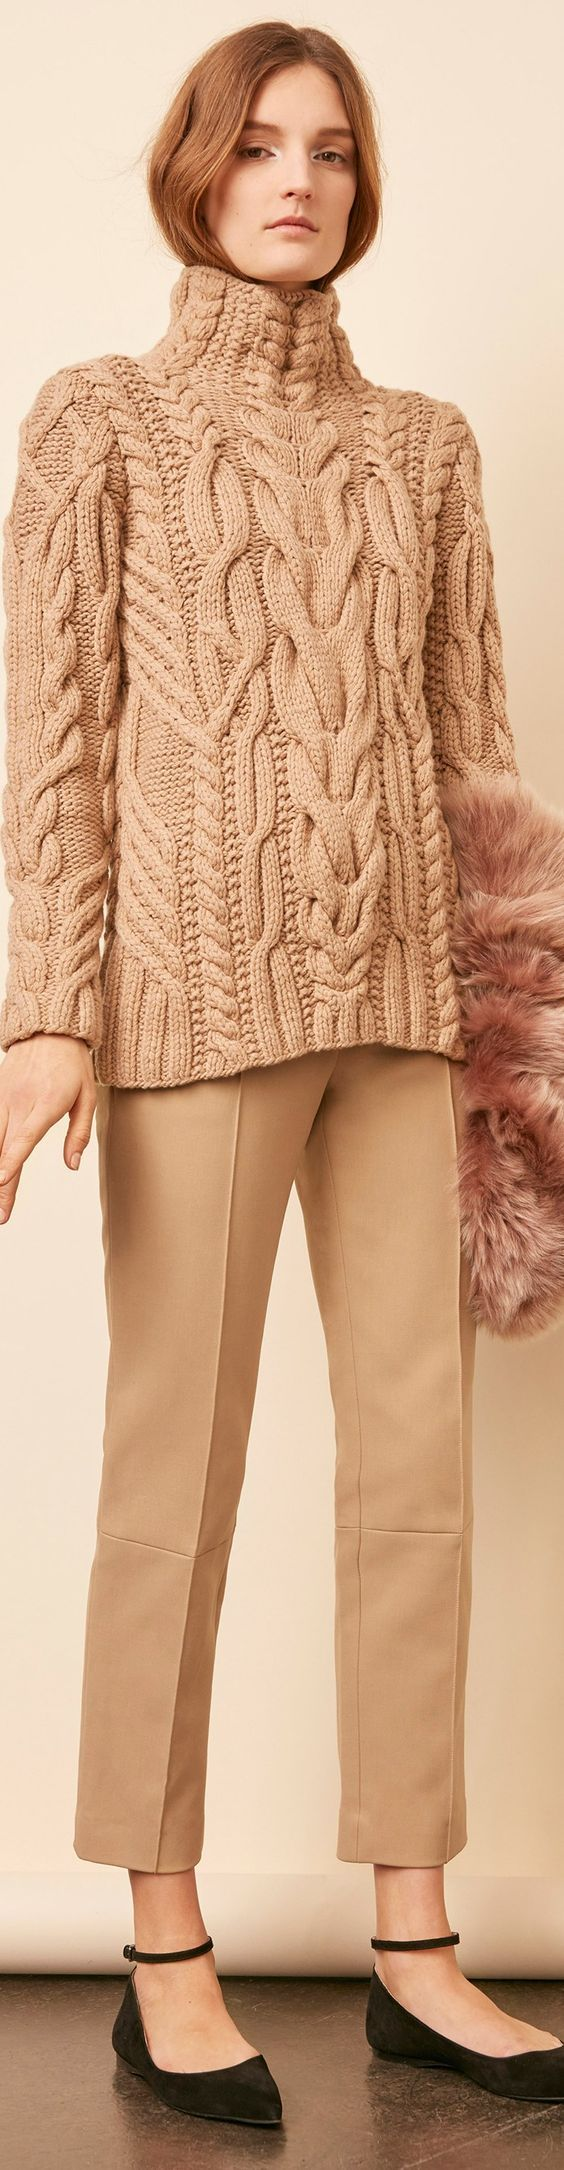 Nellie Partow Fall 2016 // Nude Sweater // Knit details ♦F&I♦